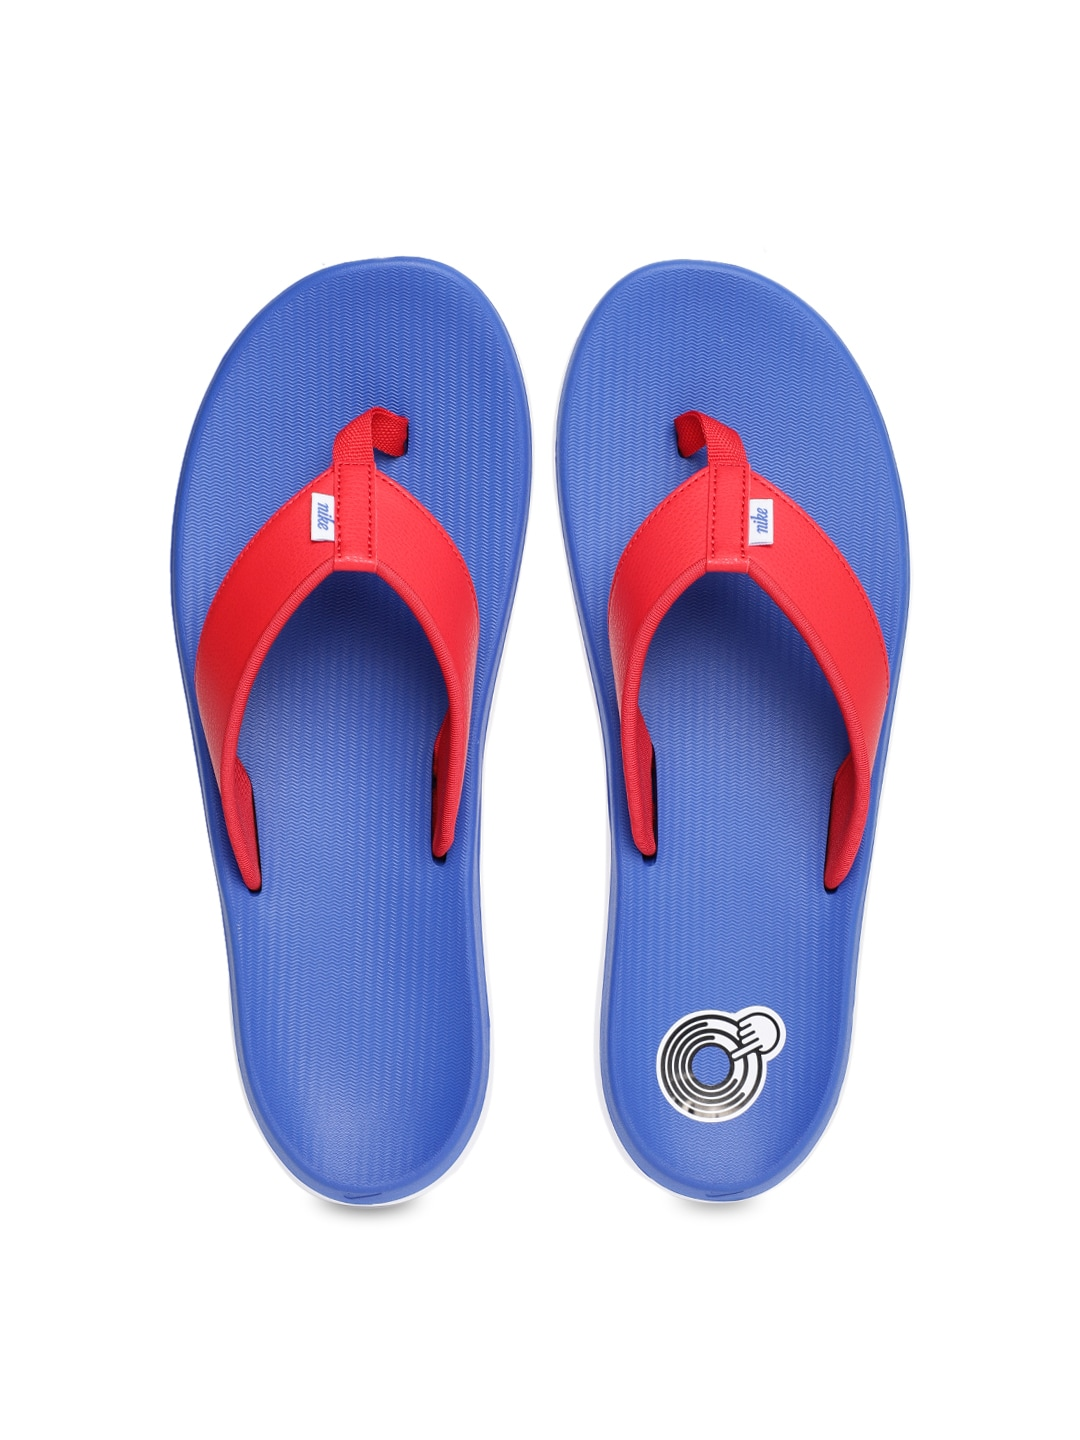 22dad83b1 Nike Nba Flip Flops - Buy Nike Nba Flip Flops online in India